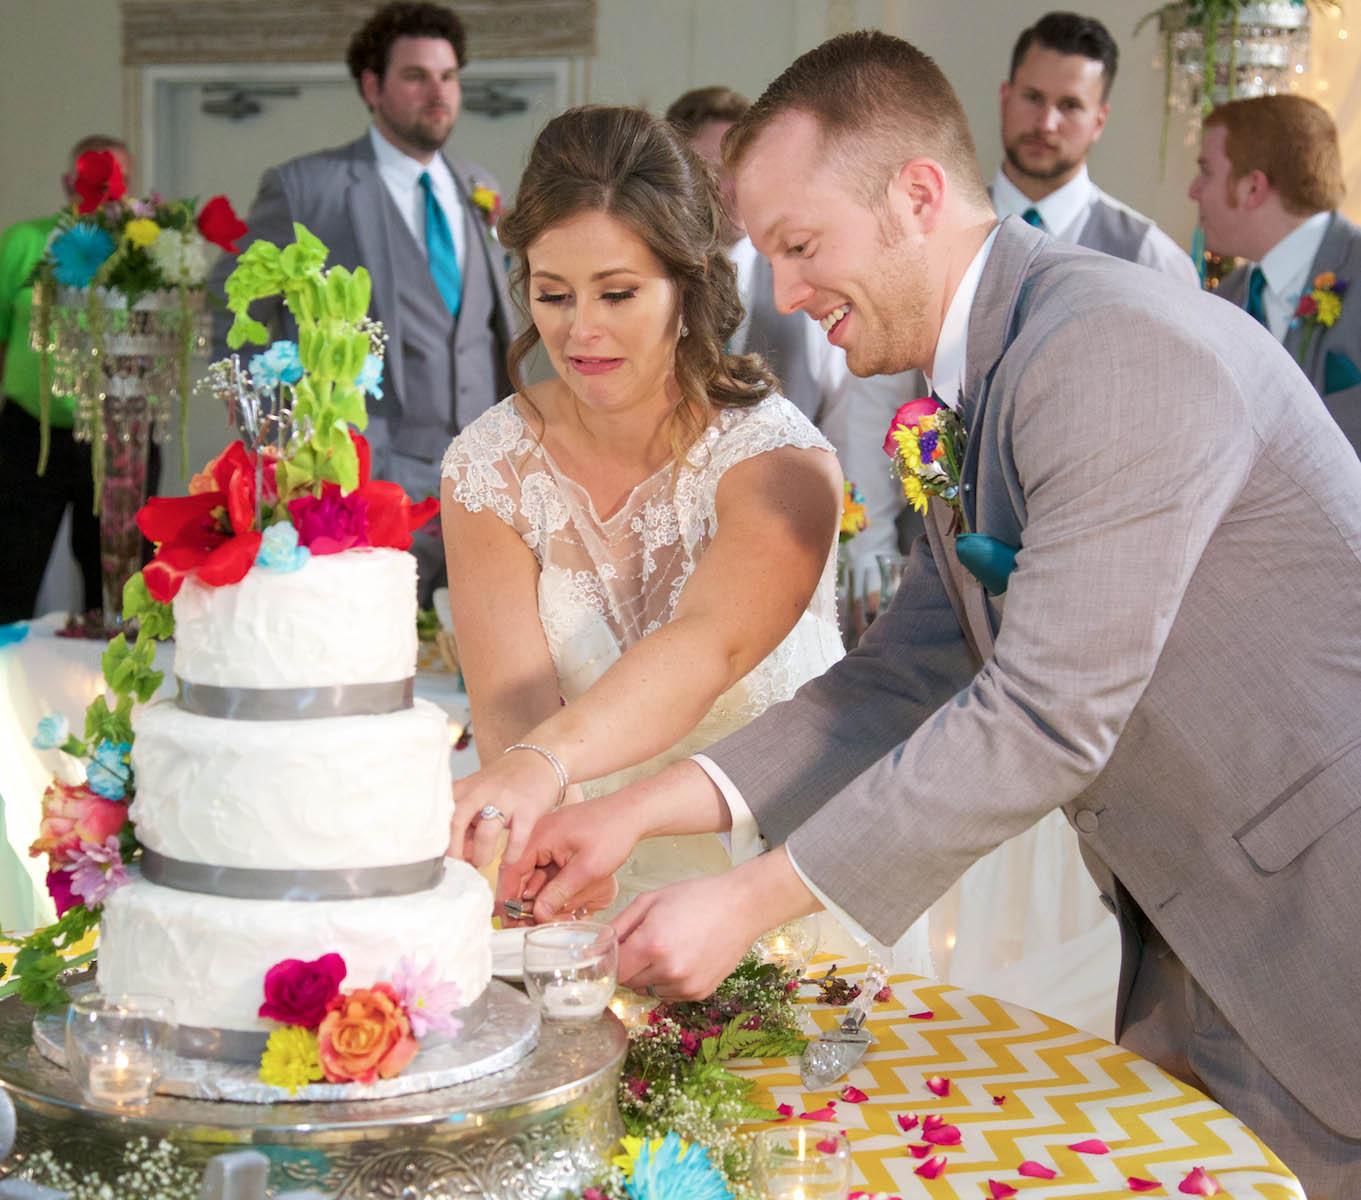 Alissa & Ben cut the cake, Icing on the Cake. Wedding pictures by Tiffany & Steve of Warmowski Photography.